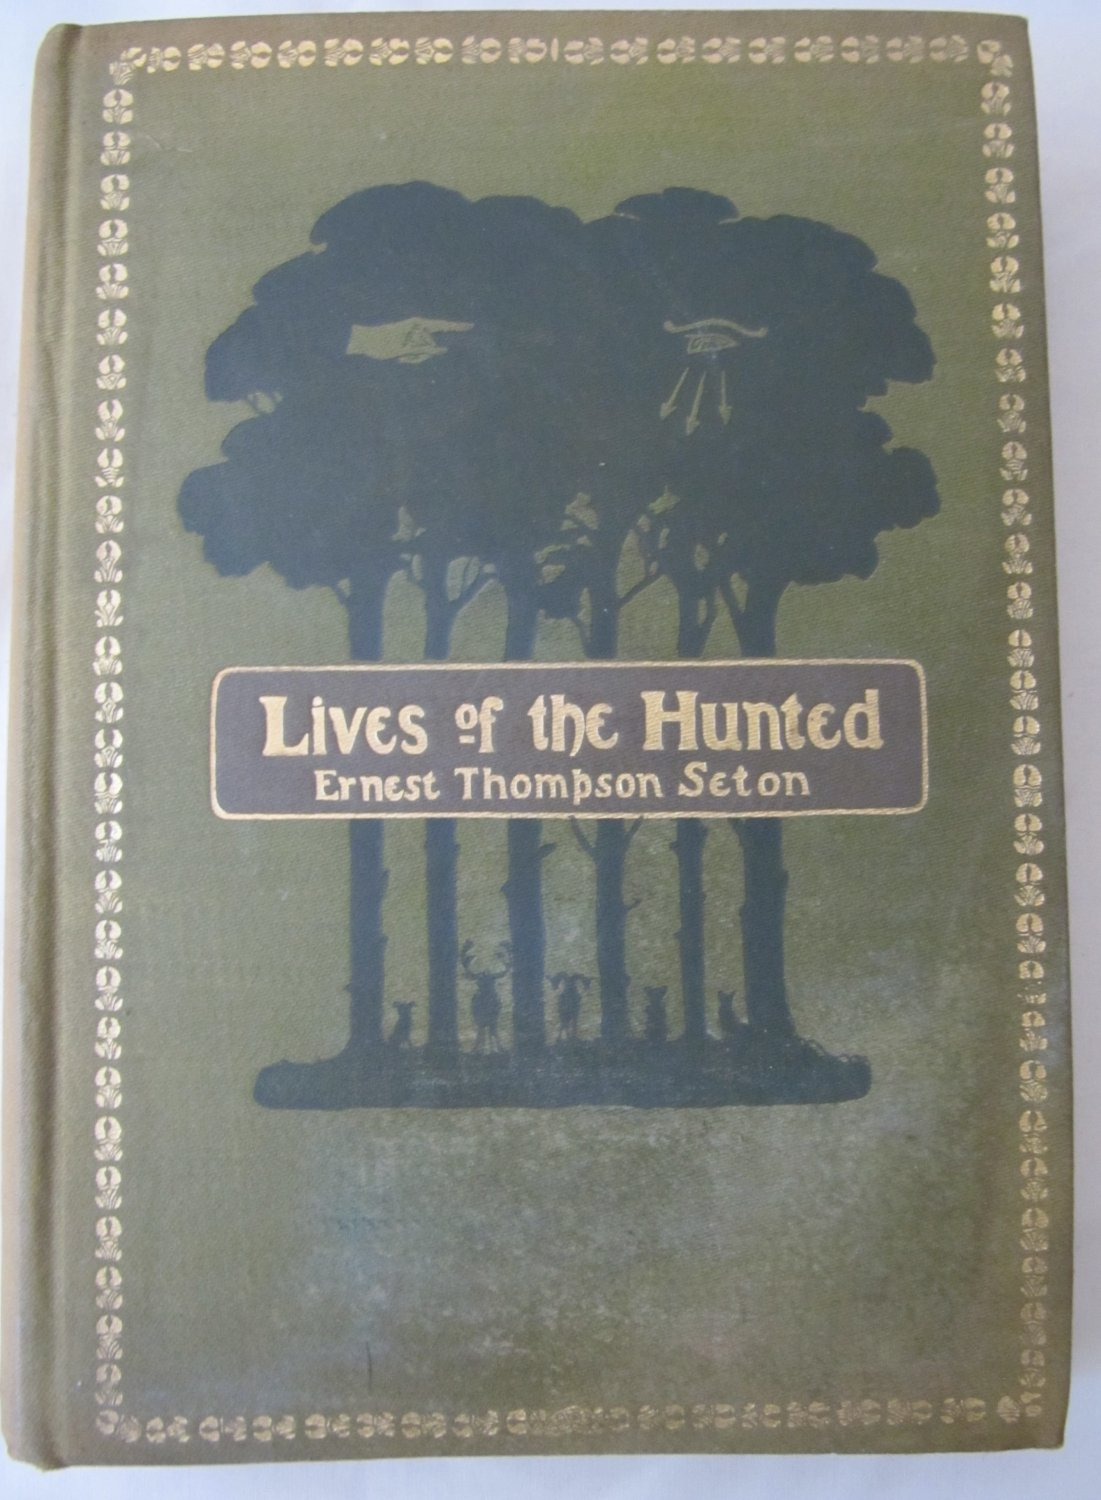 Antique Lives of the Hunted Hardcover Book by Ernest Thompson Seton 1904 Animal Stories